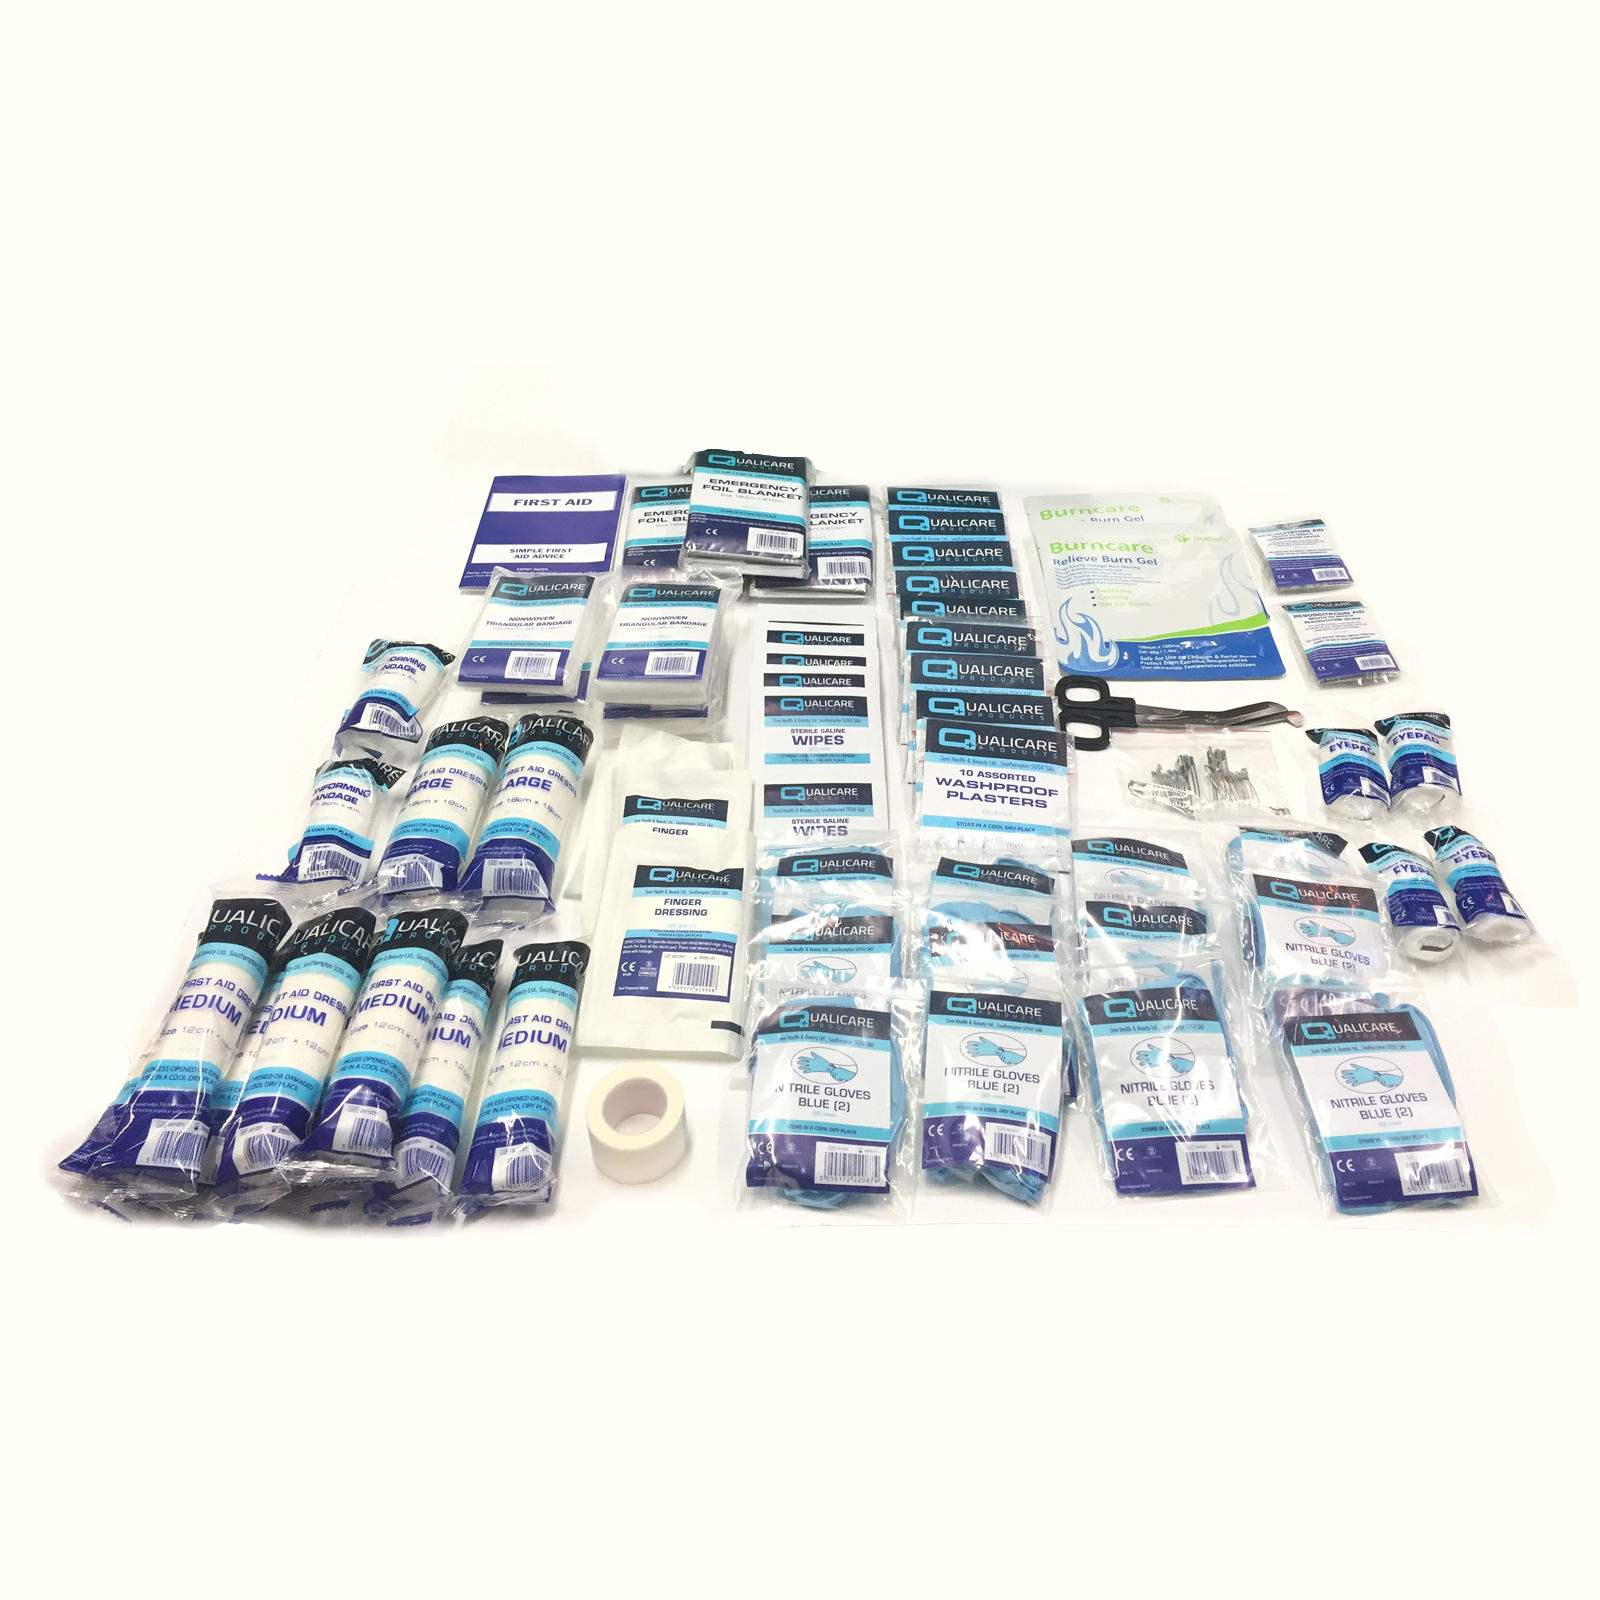 SMALL MEDICAL OFFICE HOME WORKSHOP ESSENTIAL QUALITY BSI FIRST AID KIT REFILL